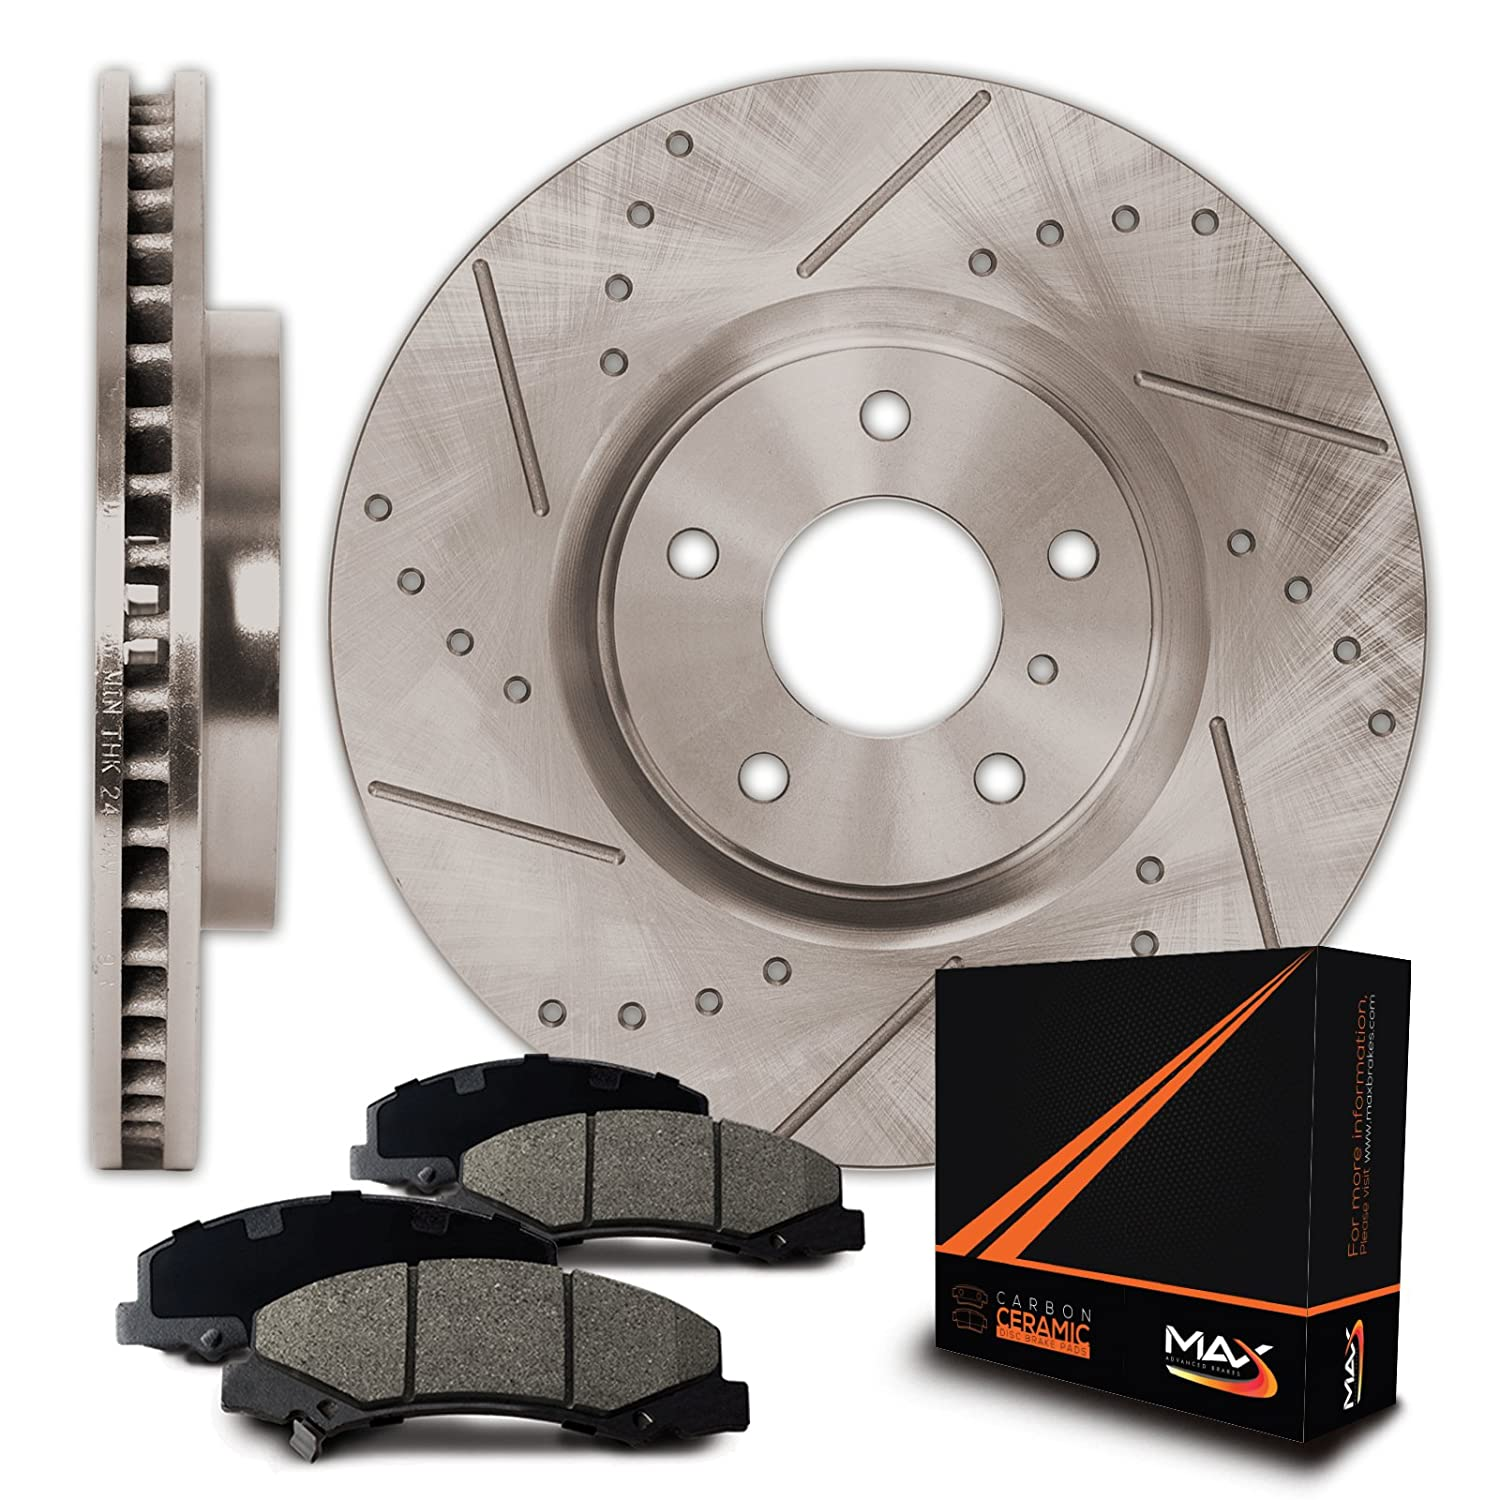 Max Brakes Premium Slotted|Drilled Rotors w/Ceramic Brake Pads Front Performance Brake Kit KT031831 [Fits:2004-2006 Dodge Durango | 2002-2005 Ram 1500] Max Advanced Brakes